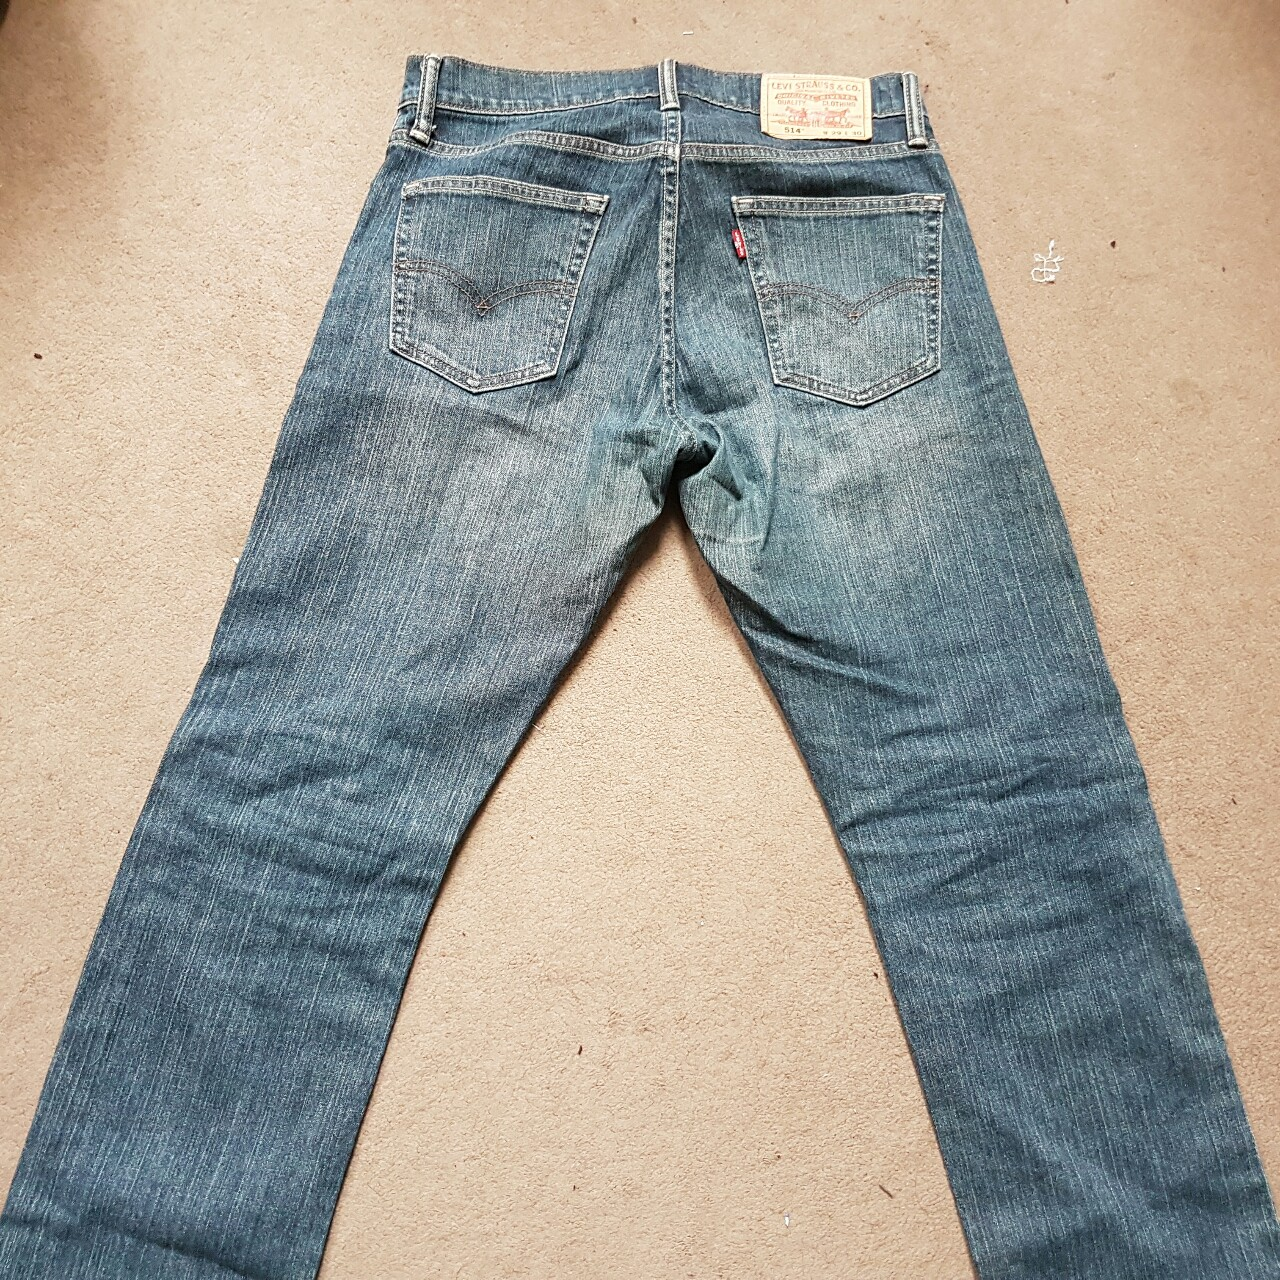 Levi Strauss Jeans, worn once, selling as they're Depop